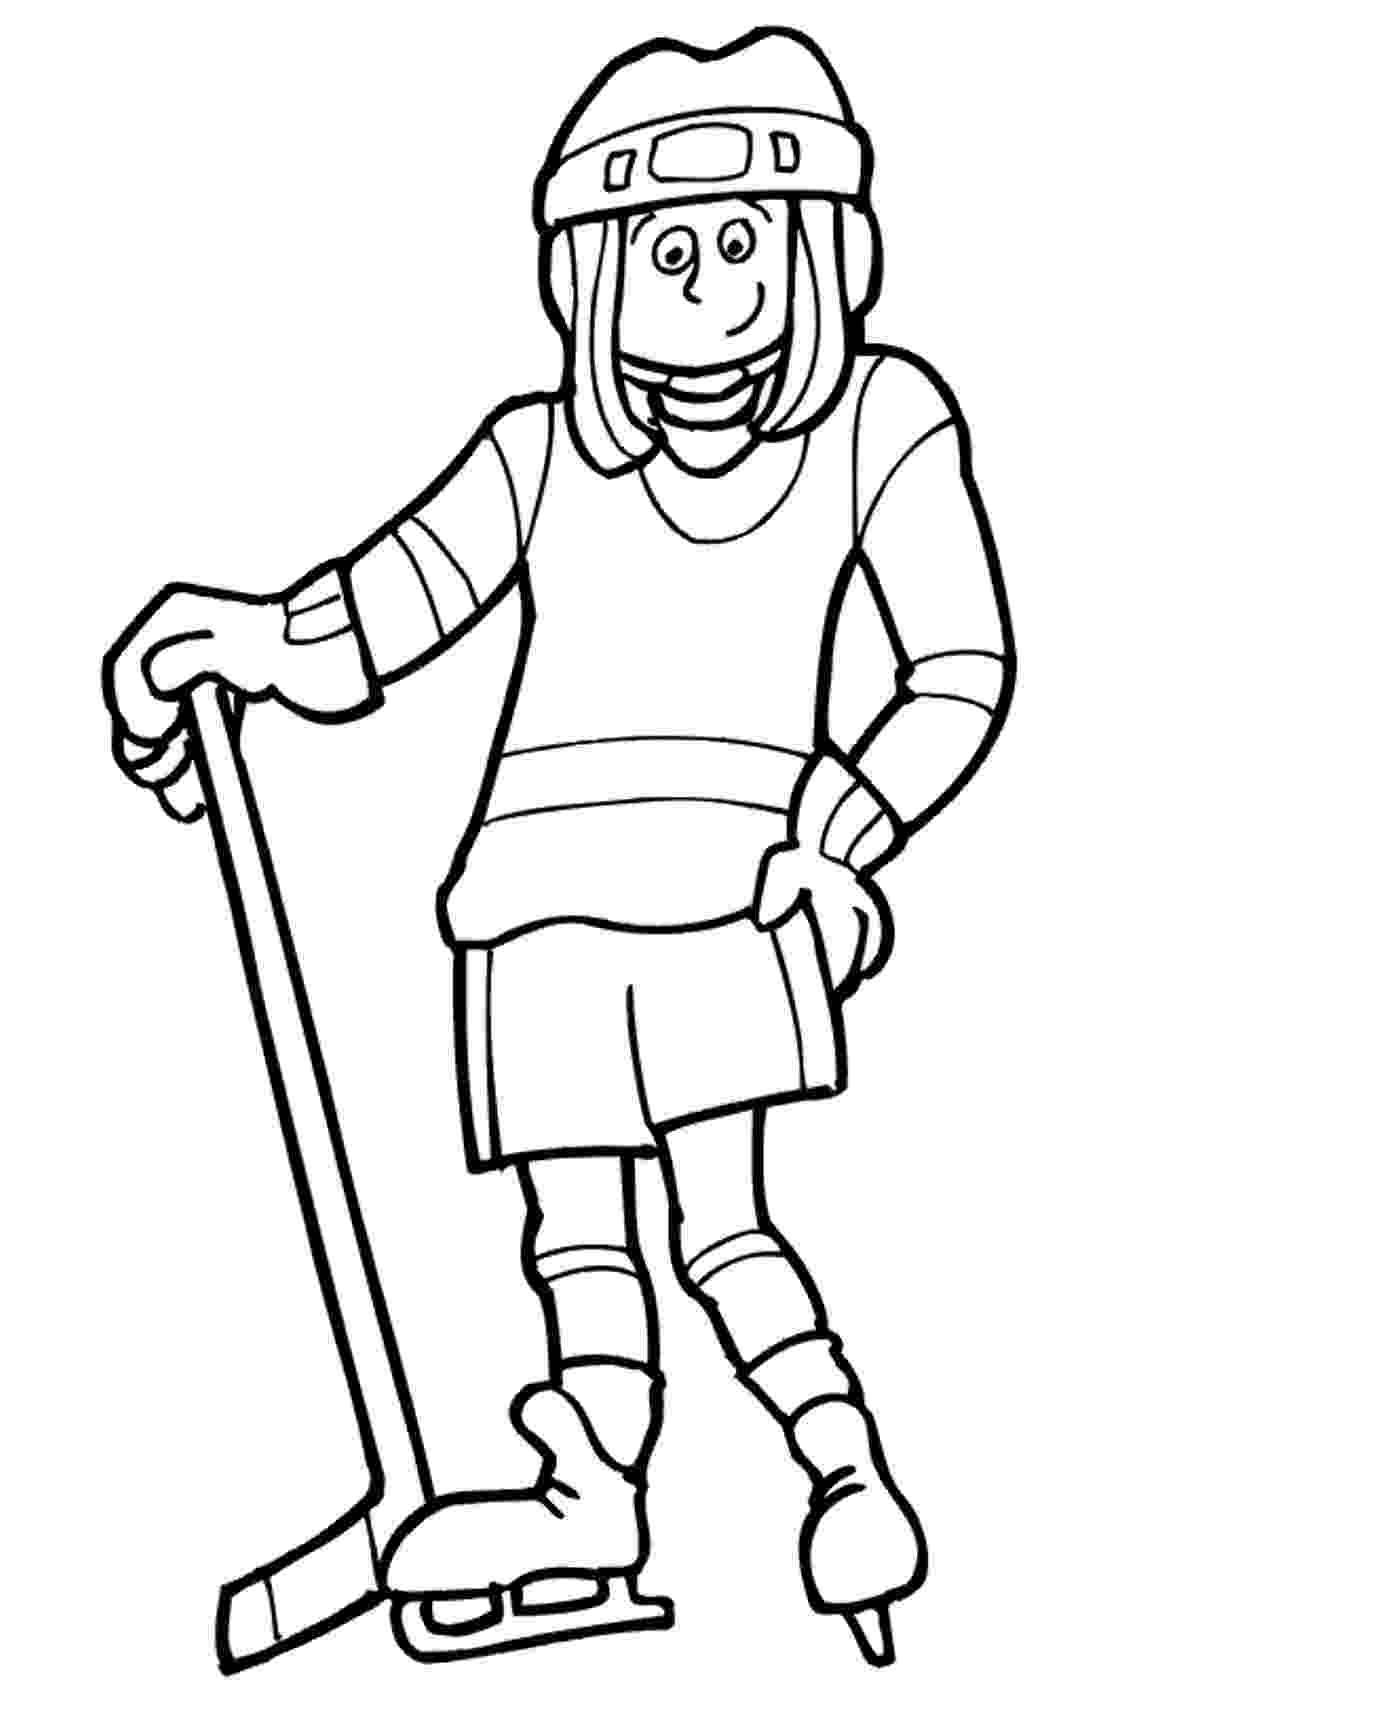 printable hockey coloring pages free printable hockey coloring pages for kids cool2bkids pages coloring printable hockey